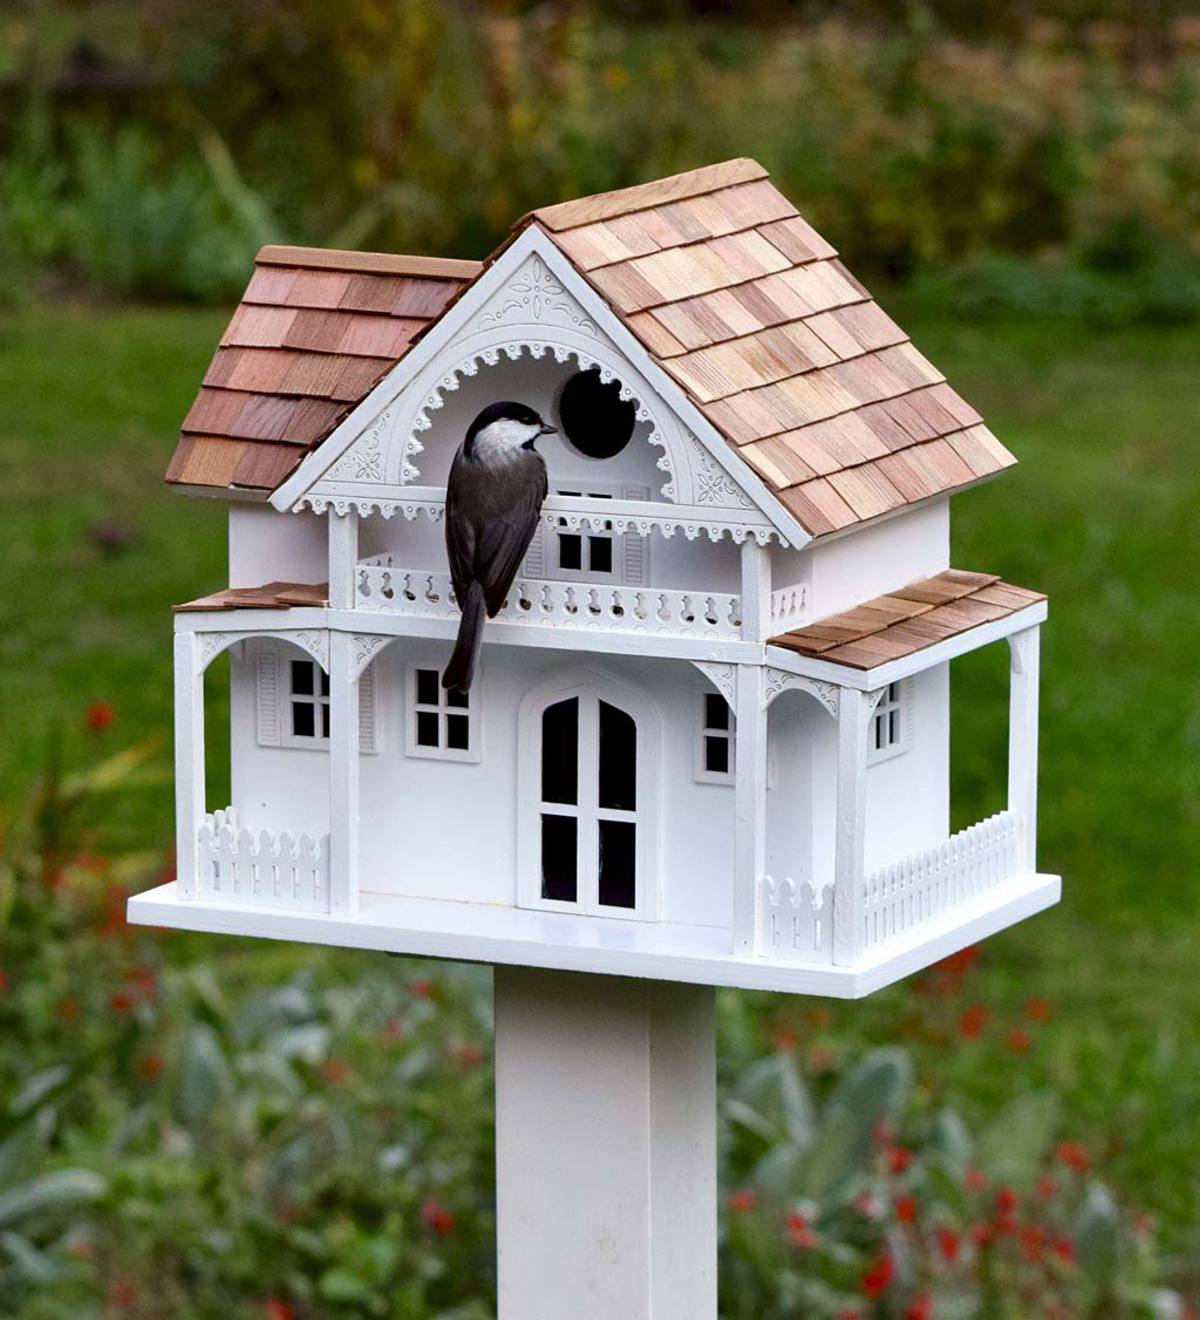 Shelter Island Birdhouse And Pole Birds And Nature